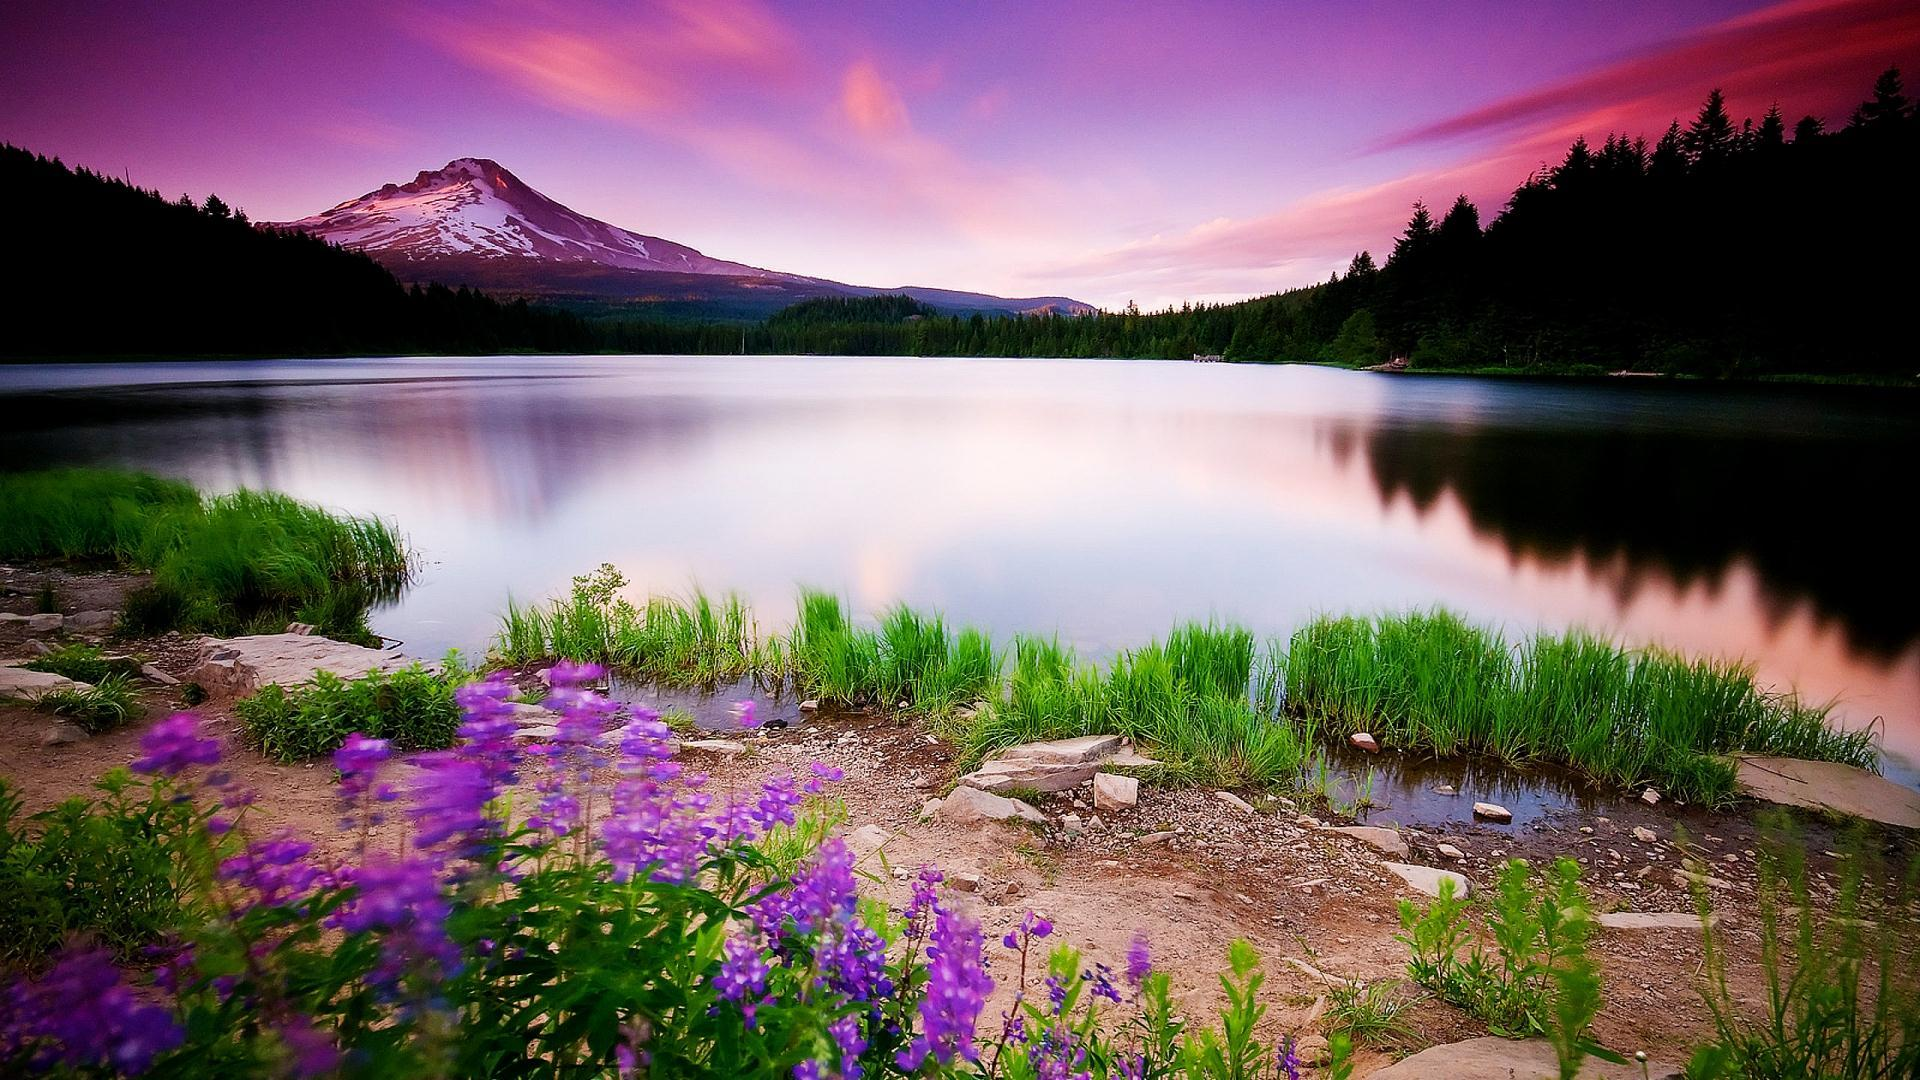 Beautiful Landscape Image Widescreen 2 HD Wallpapers